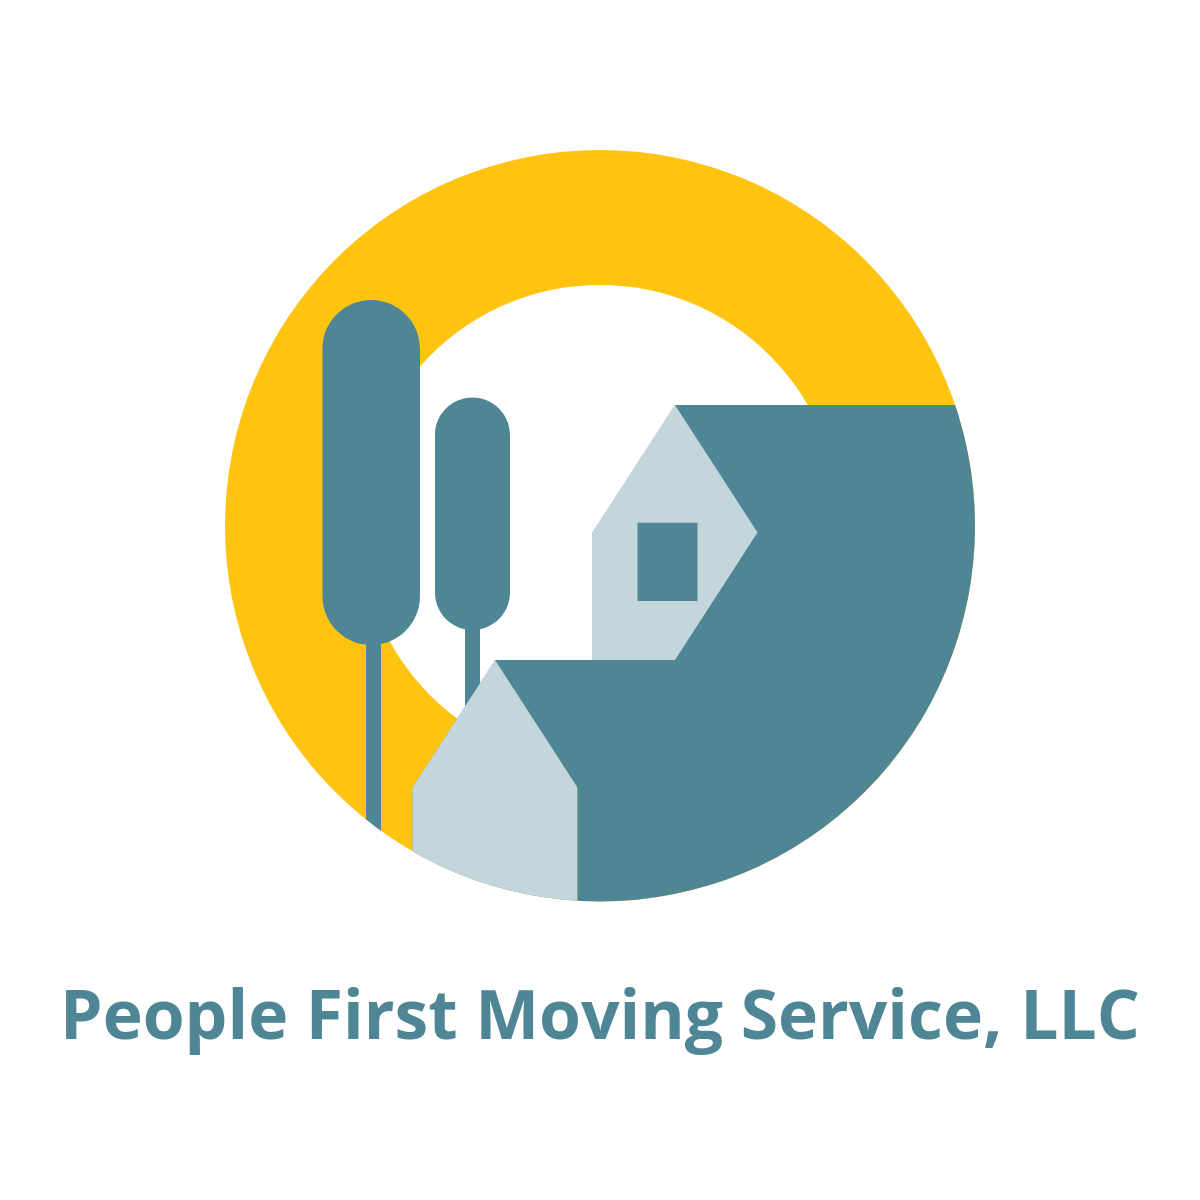 People First Moving Service logo